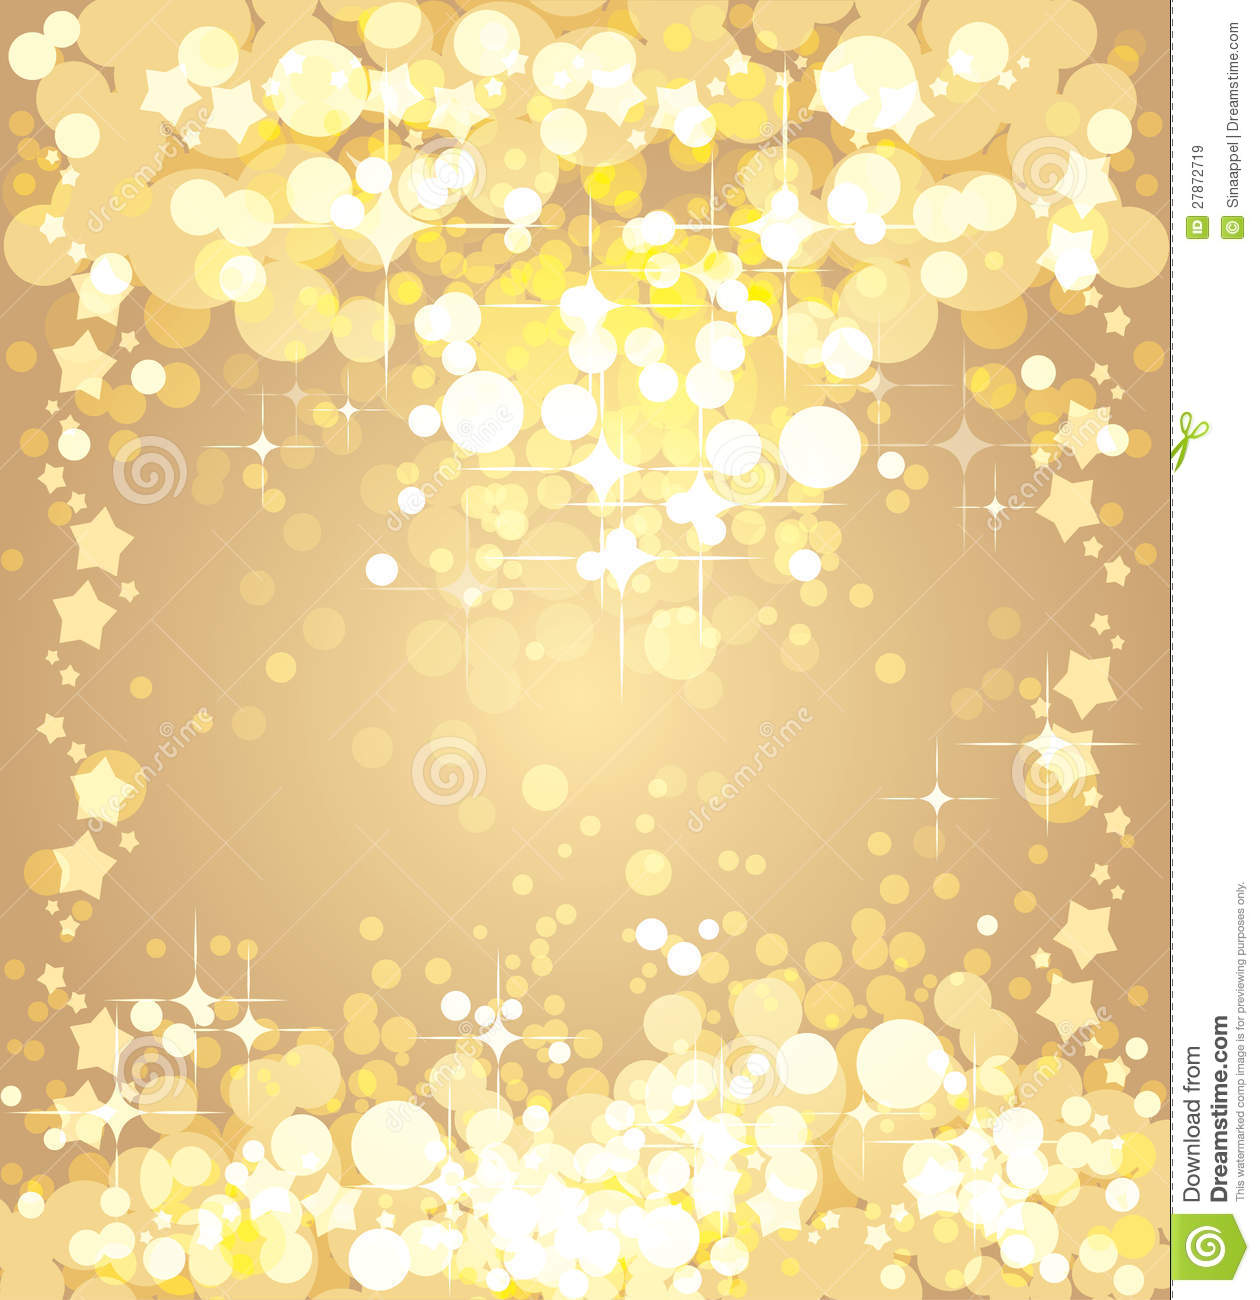 christmas gold background golden - photo #12